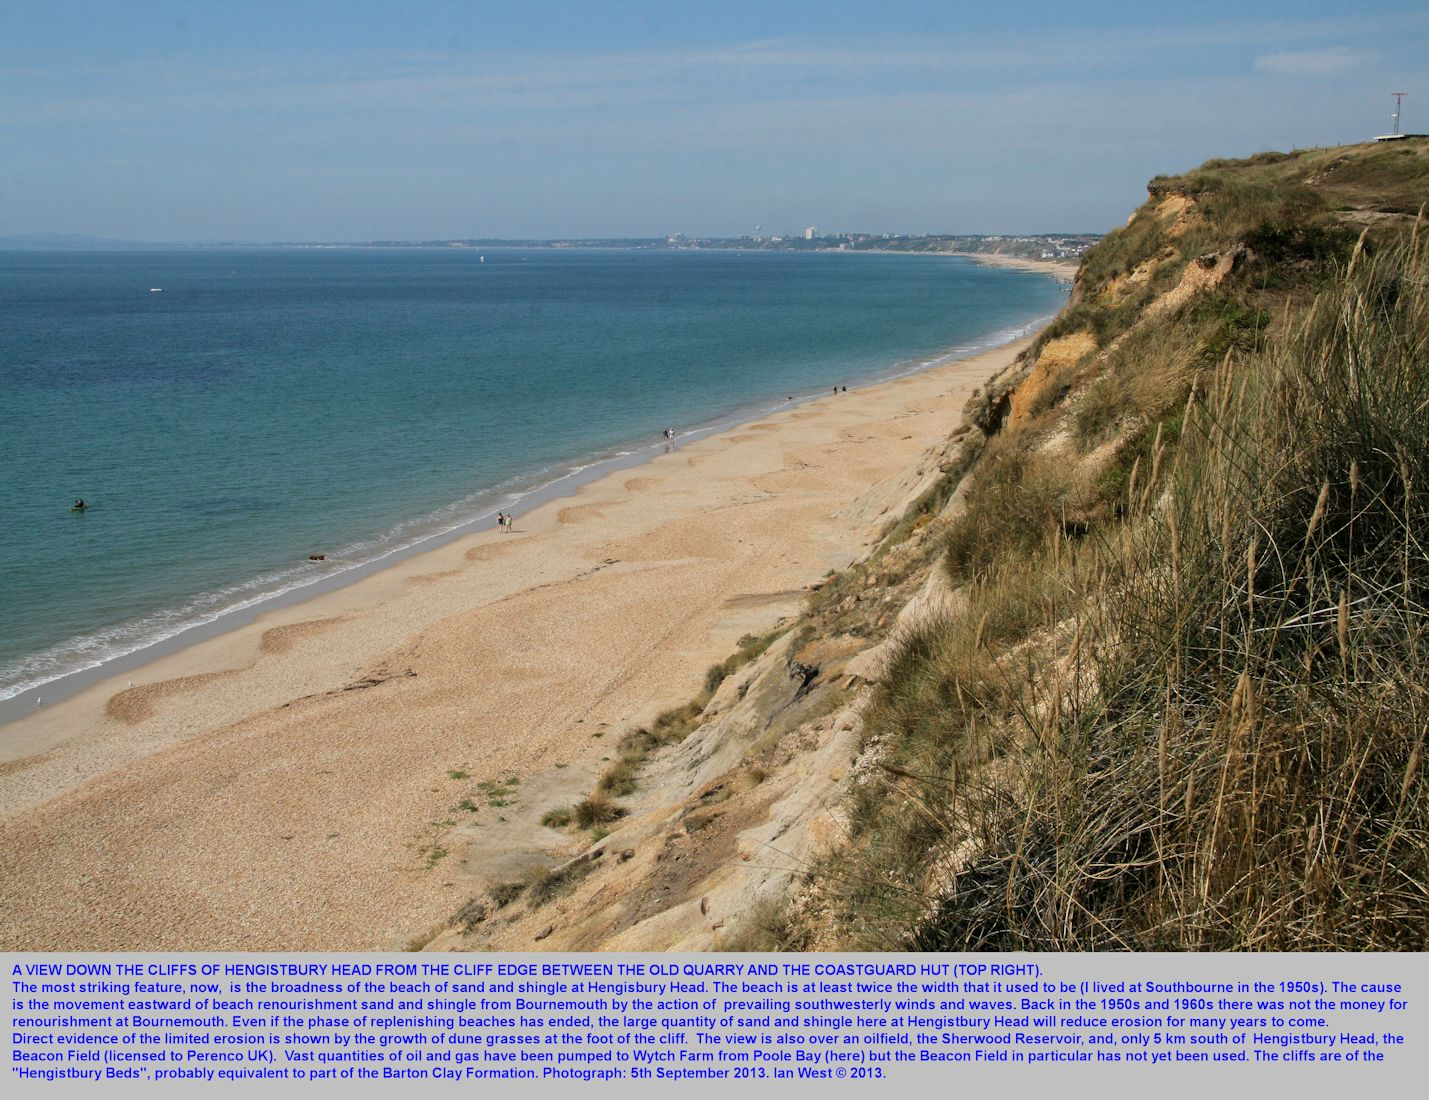 At Hengistbury Head looking down the cliff of mainly Hengistbury Beds to a very broad beach with sand and shingle derived from the renourishment at Bournemouth, Dorset, September 2013